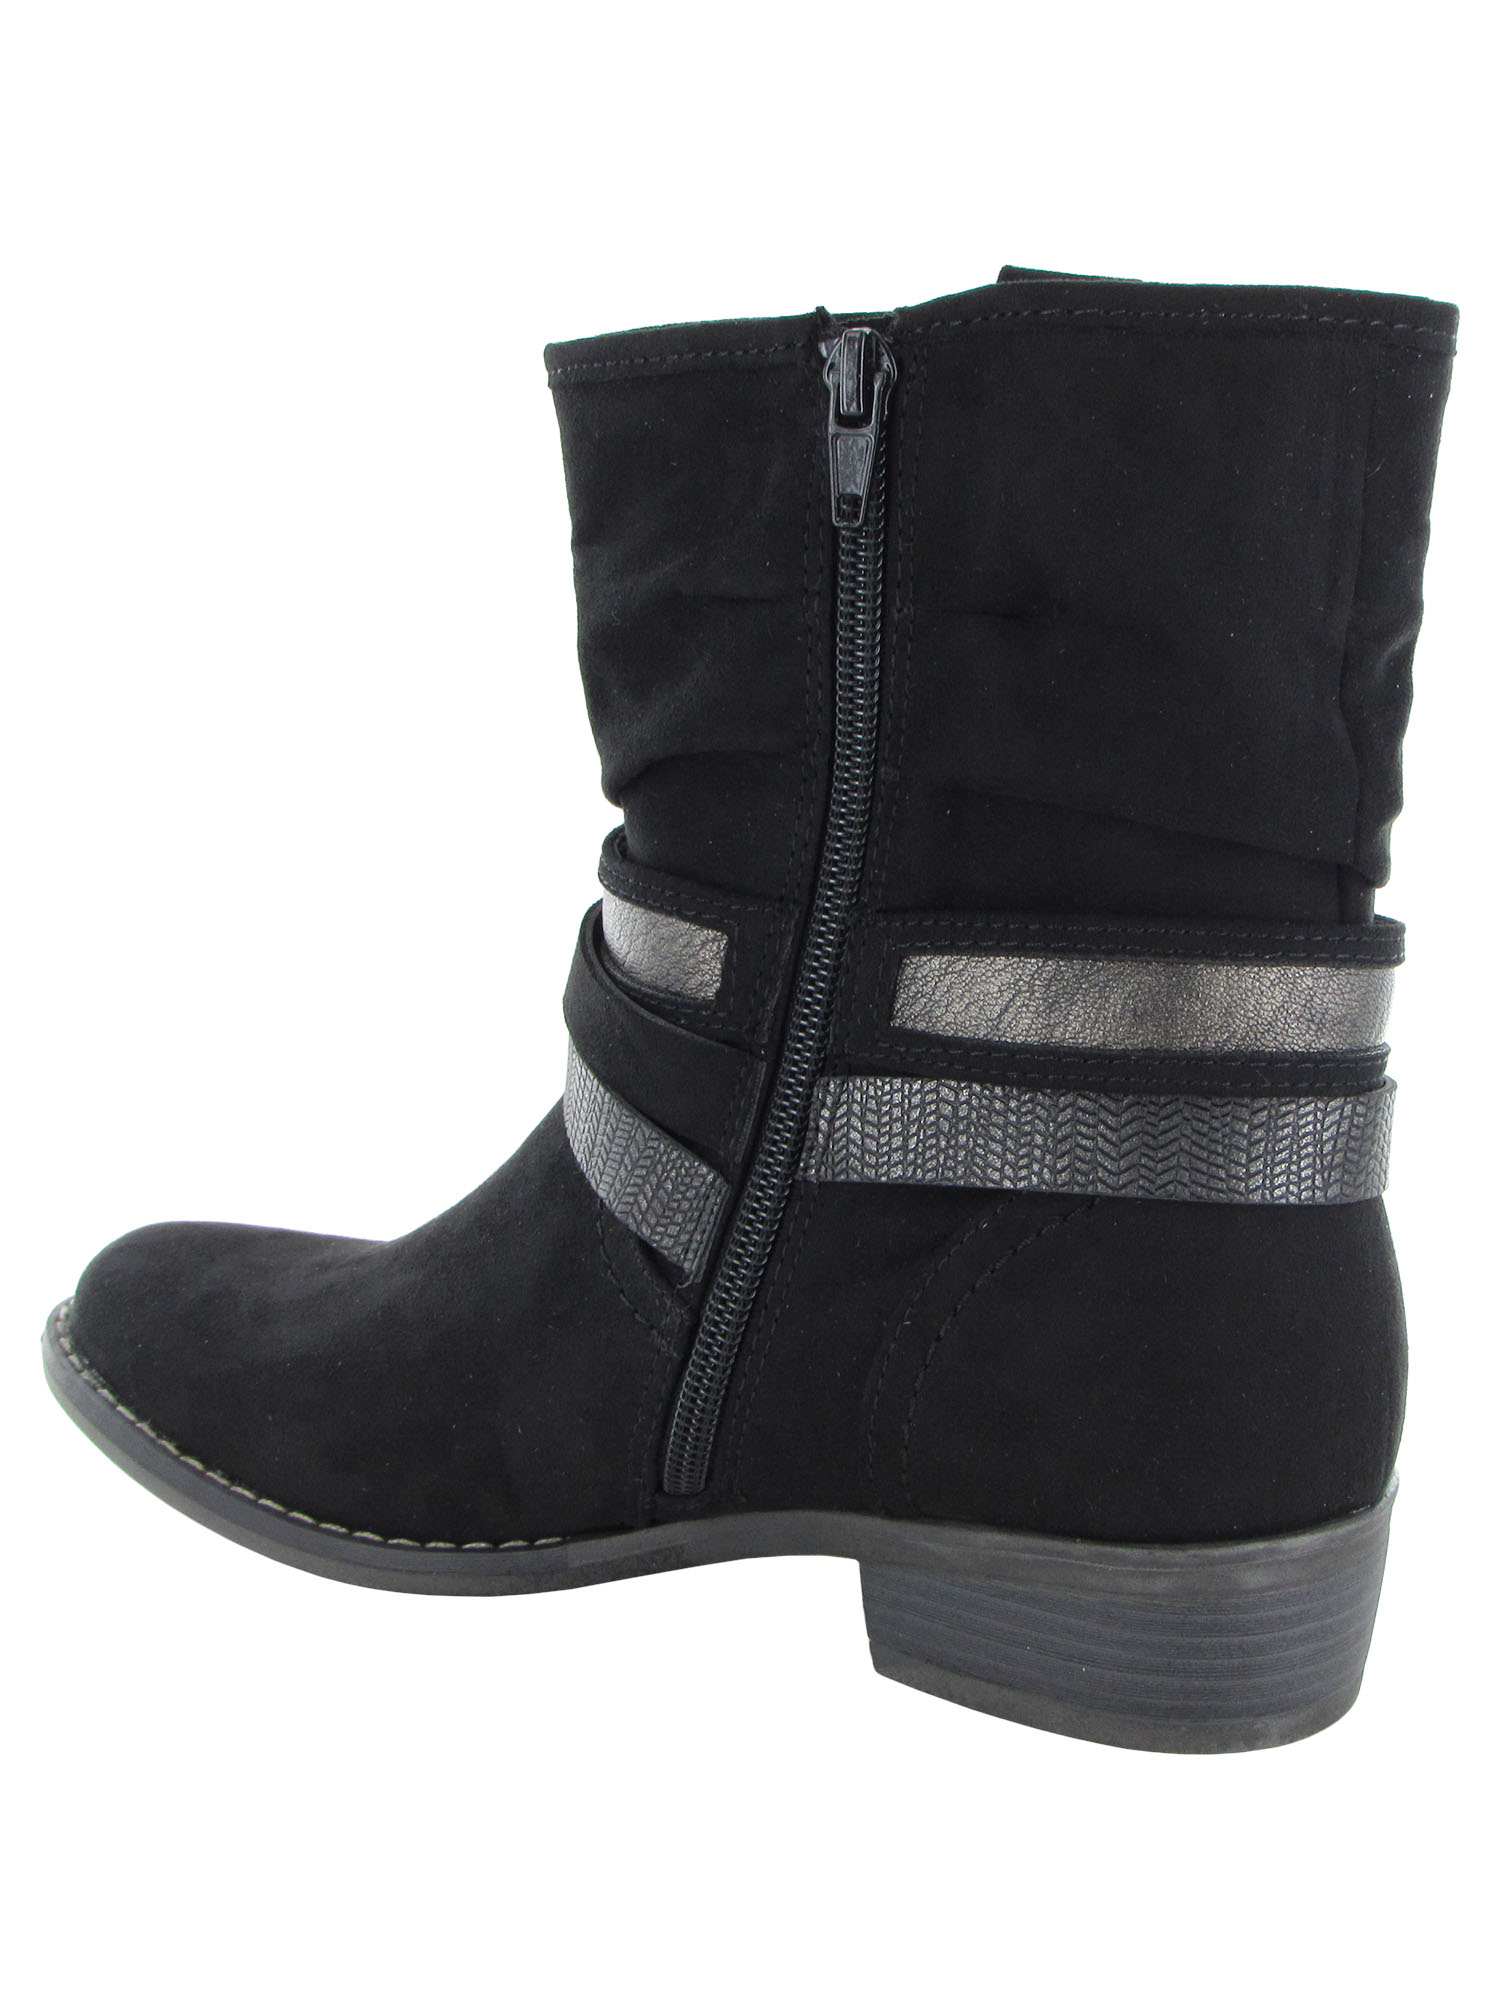 XAPPEAL-Womens-Shin-High-Low-Heel-Slouch-Boot-Shoes thumbnail 3